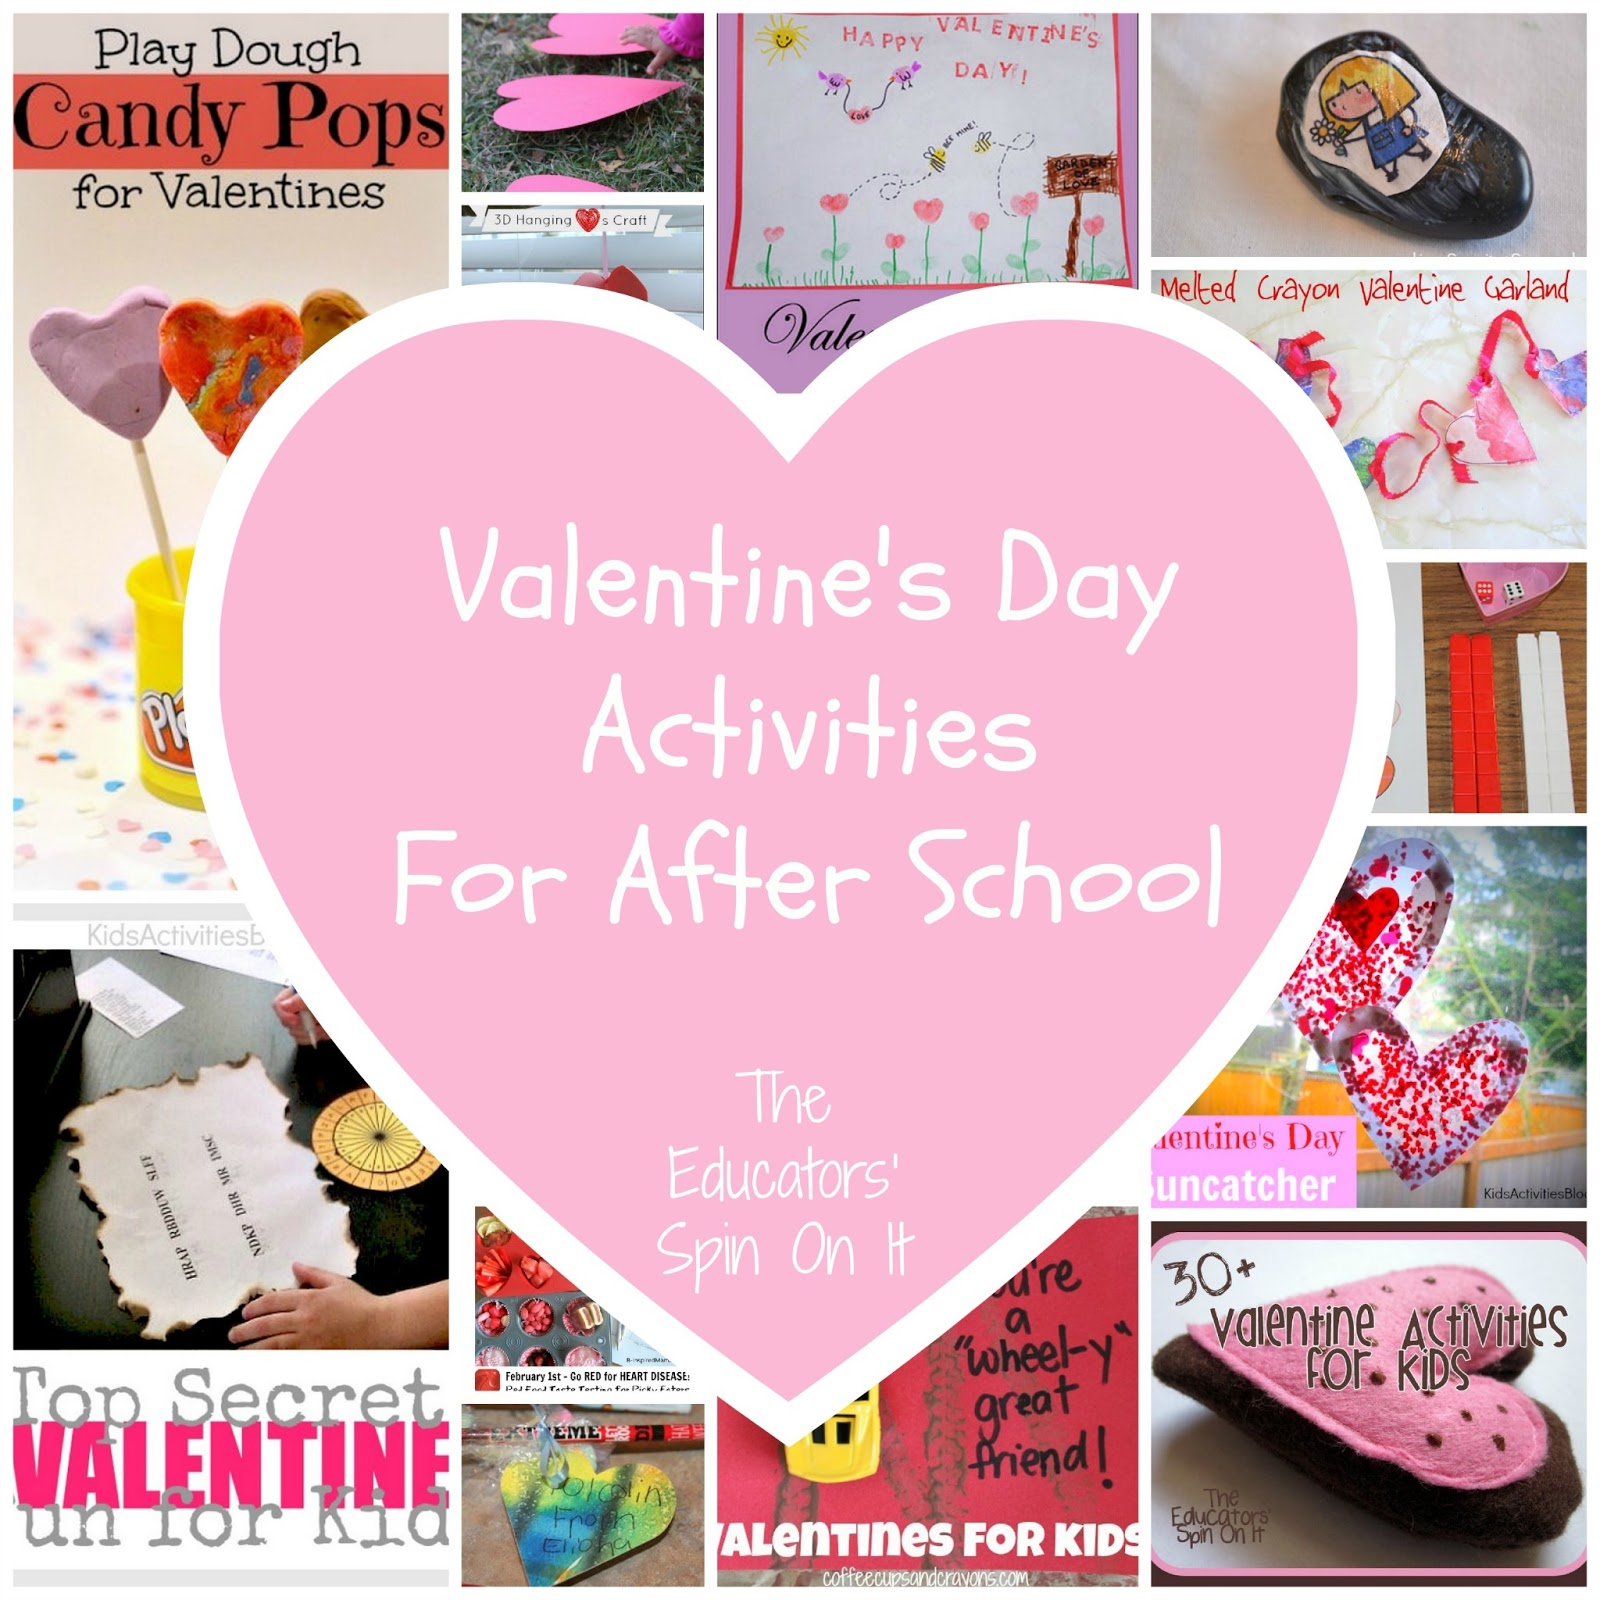 Last Minute Valentine S Day Ideas The Educators Spin On It